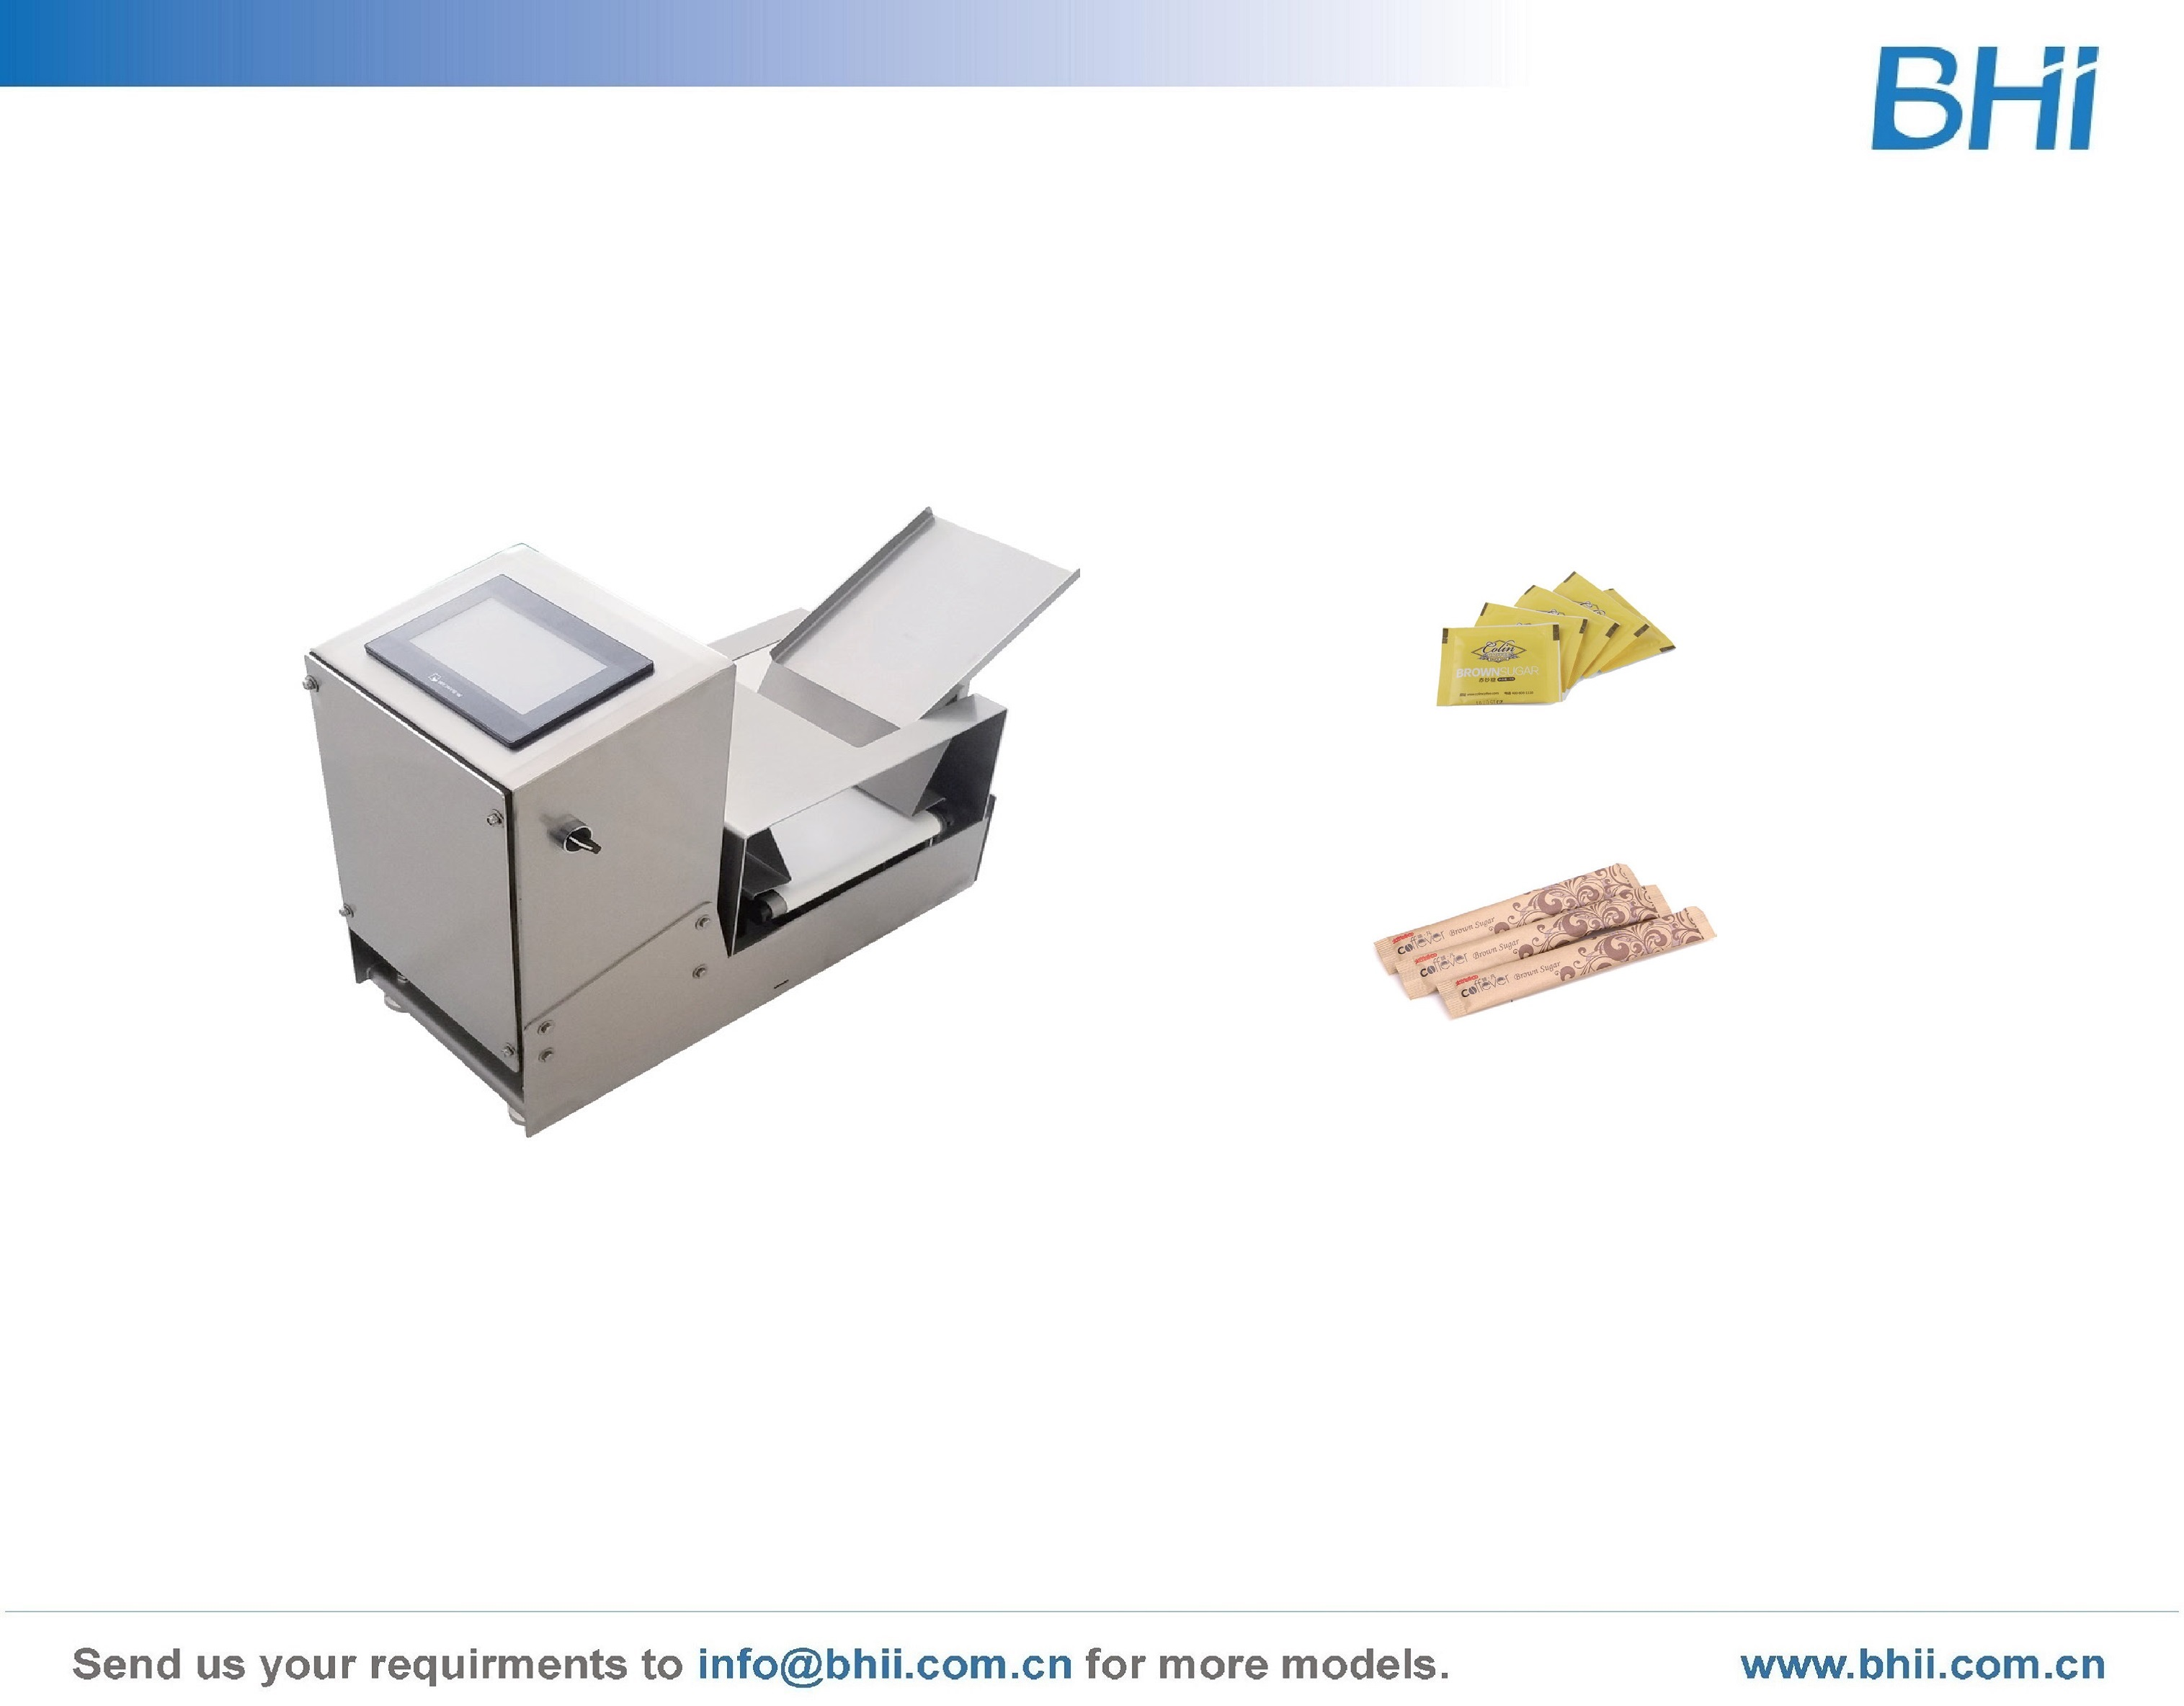 CW200 Single Platform Checkweigher